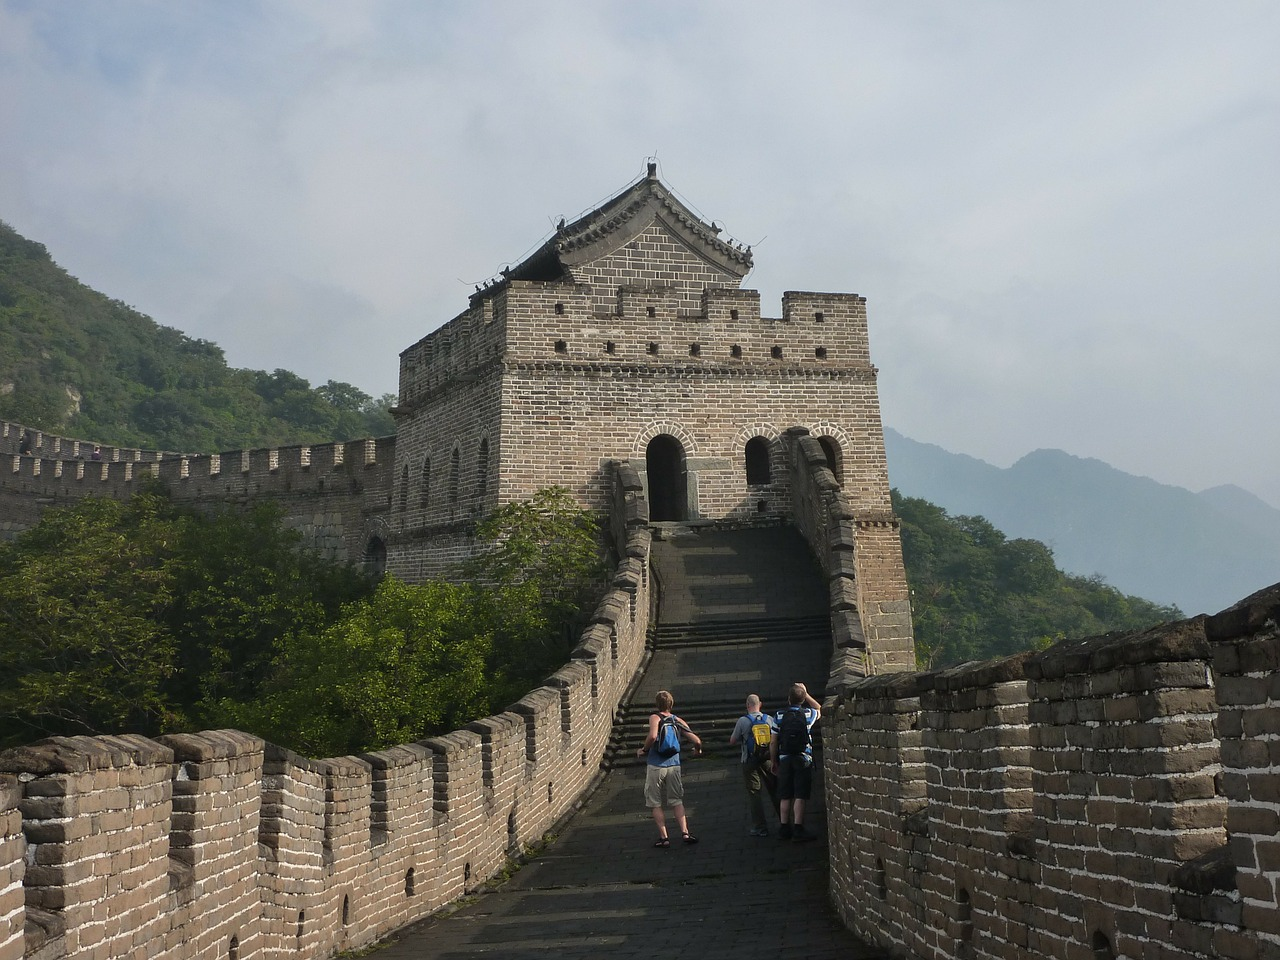 great-wall-of-china-317990_1280.jpg